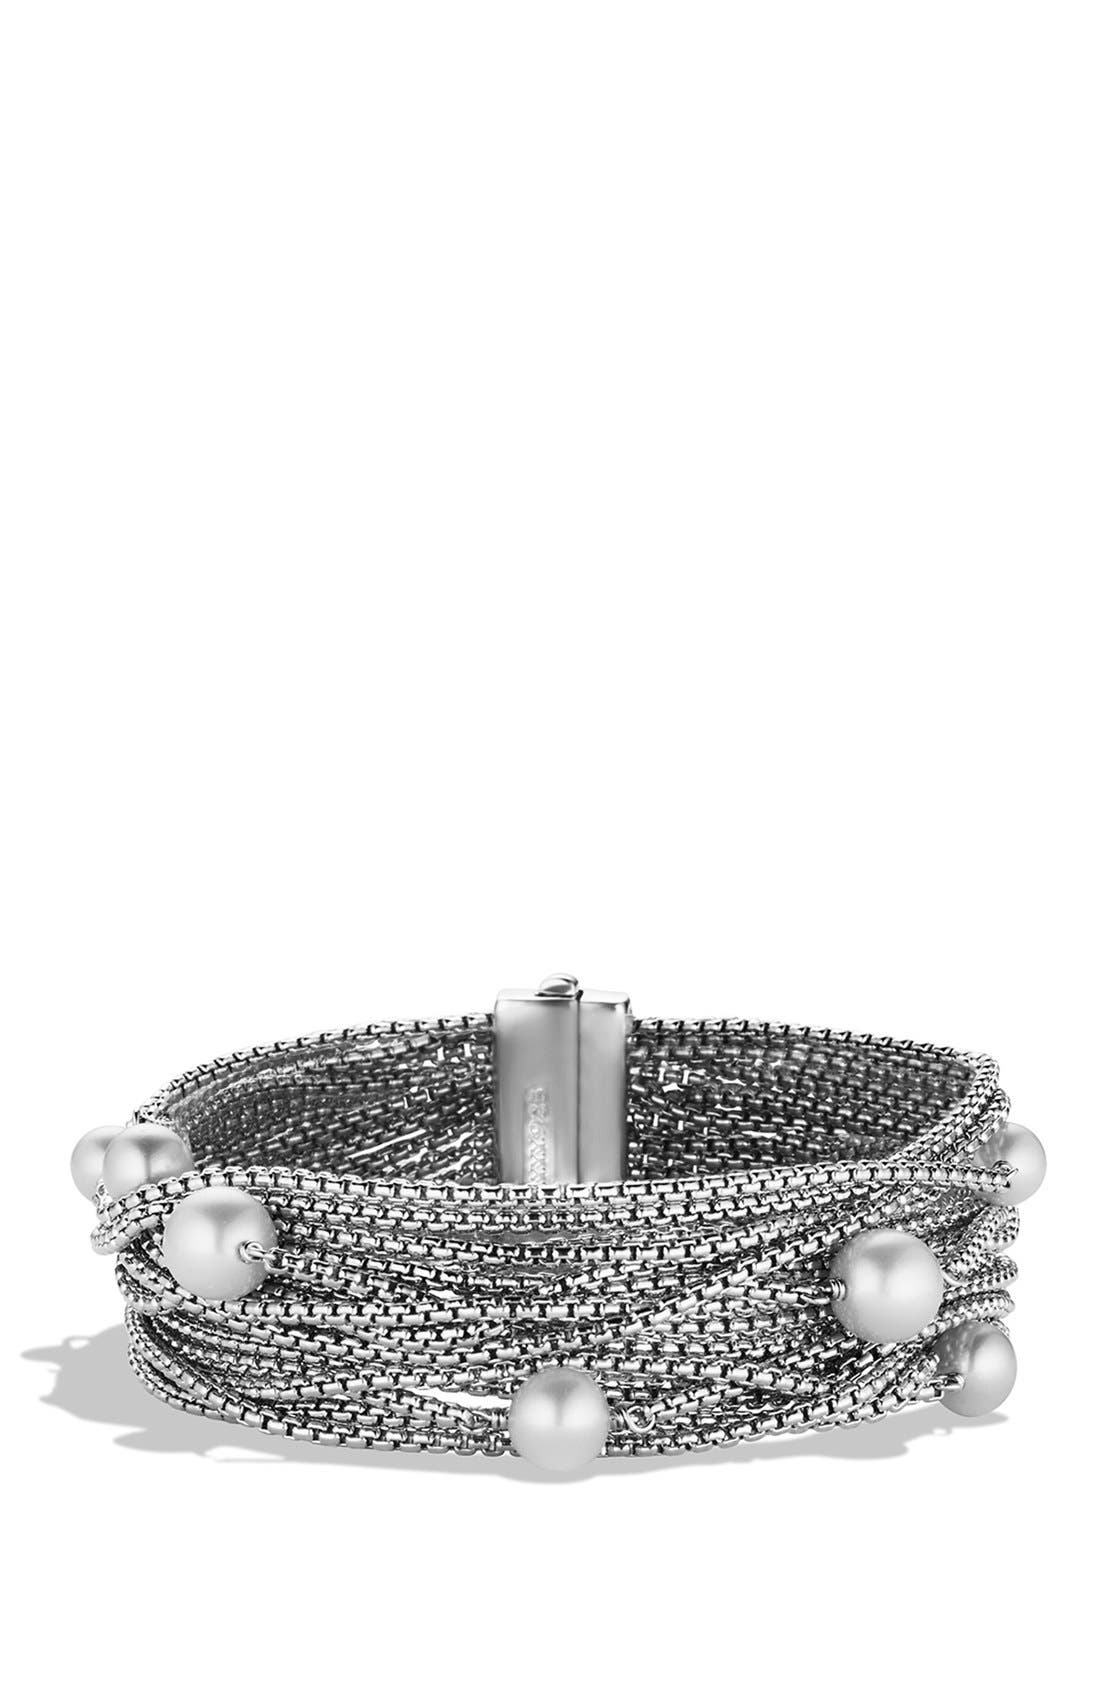 DAVID YURMAN Sixteen-Row Chain Bracelet with Pearls